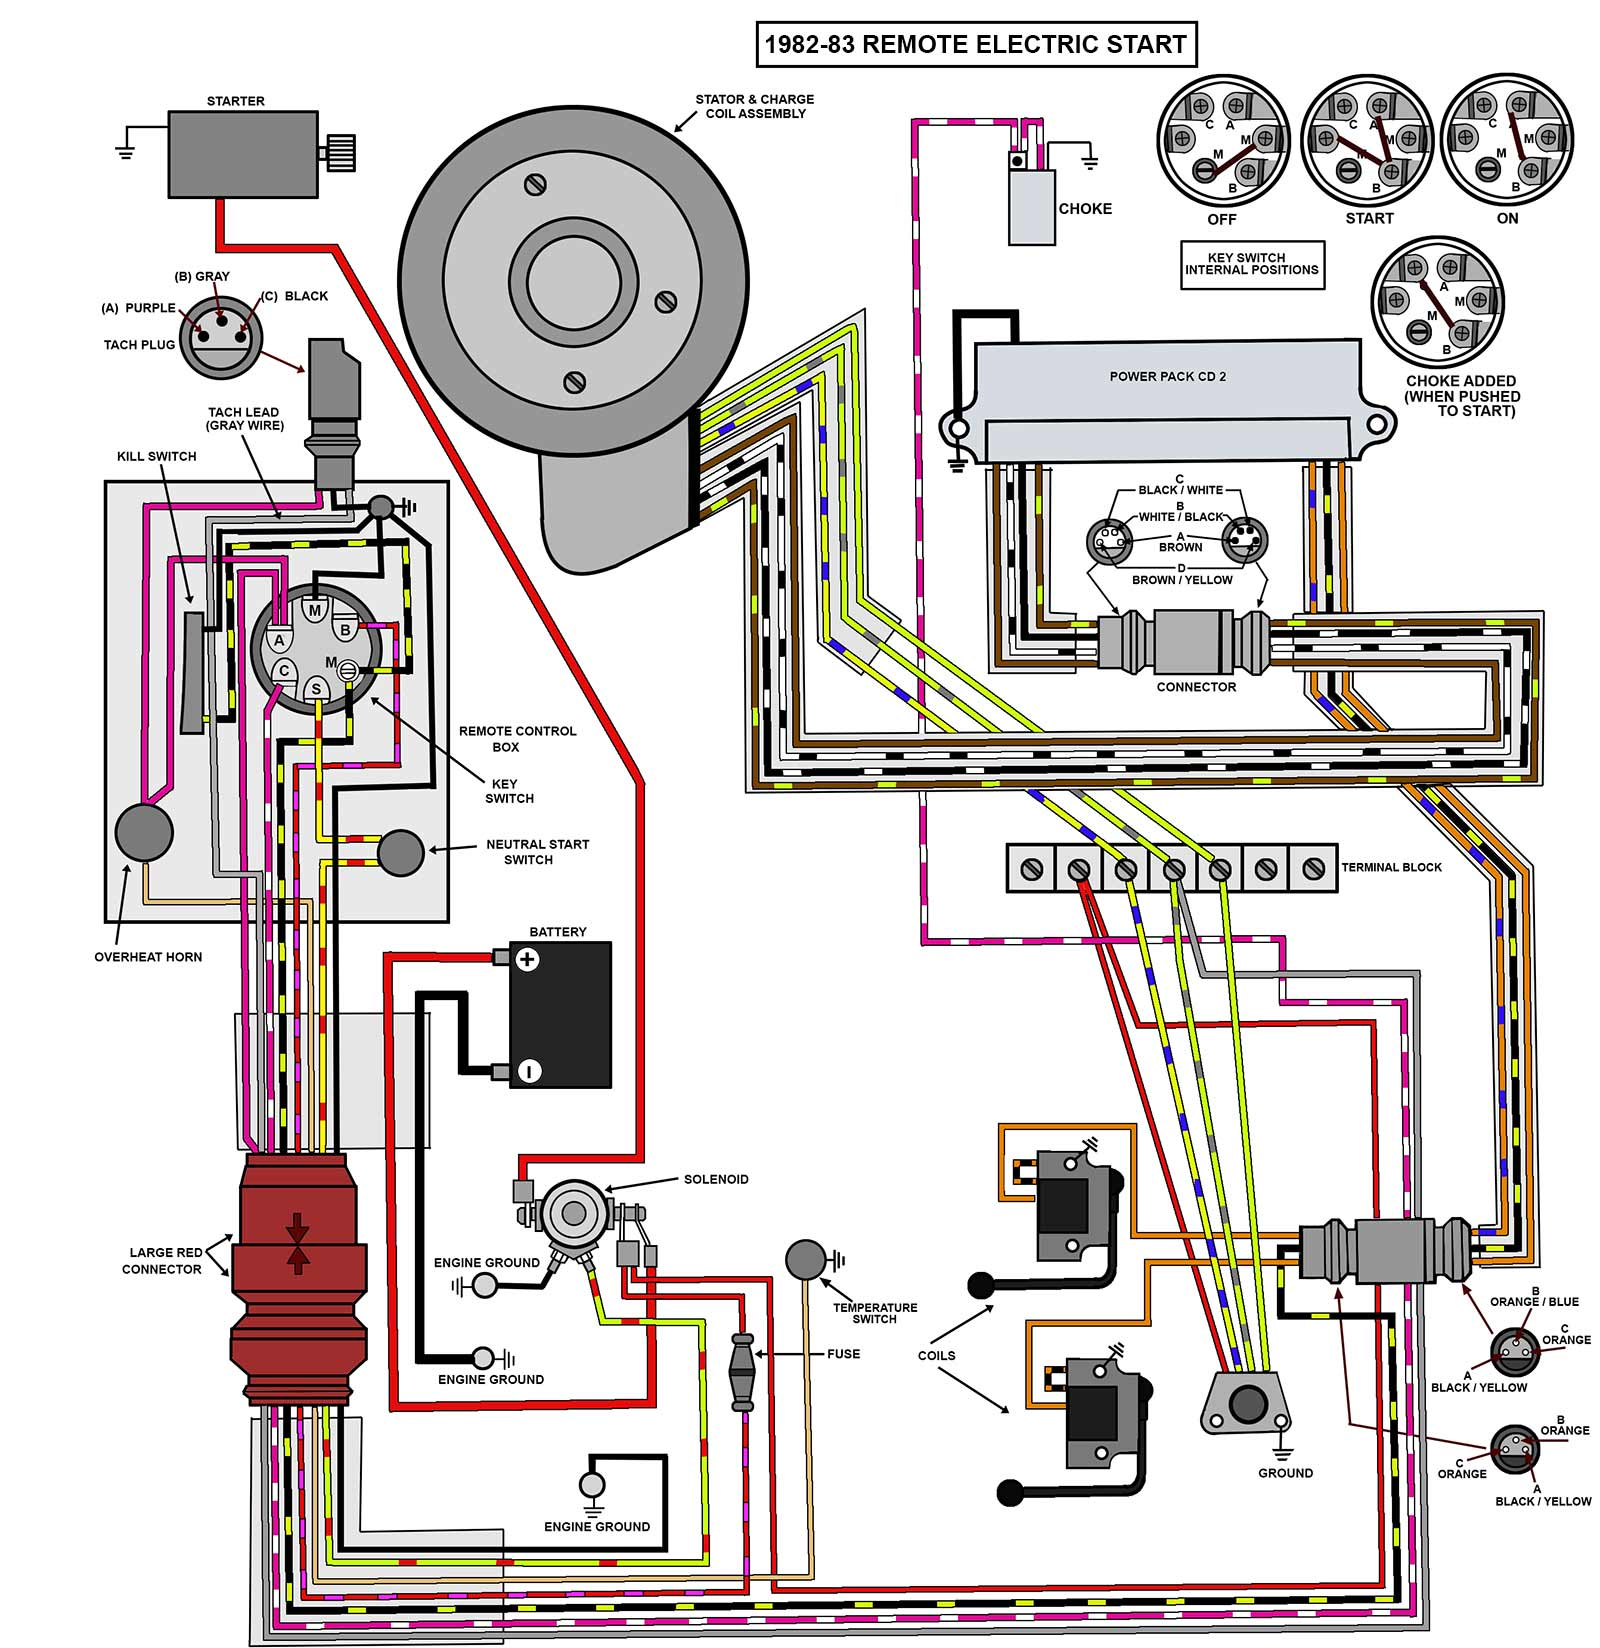 Wiring Diagram Omc 583653 - Wiring Diagram & Cable Management on